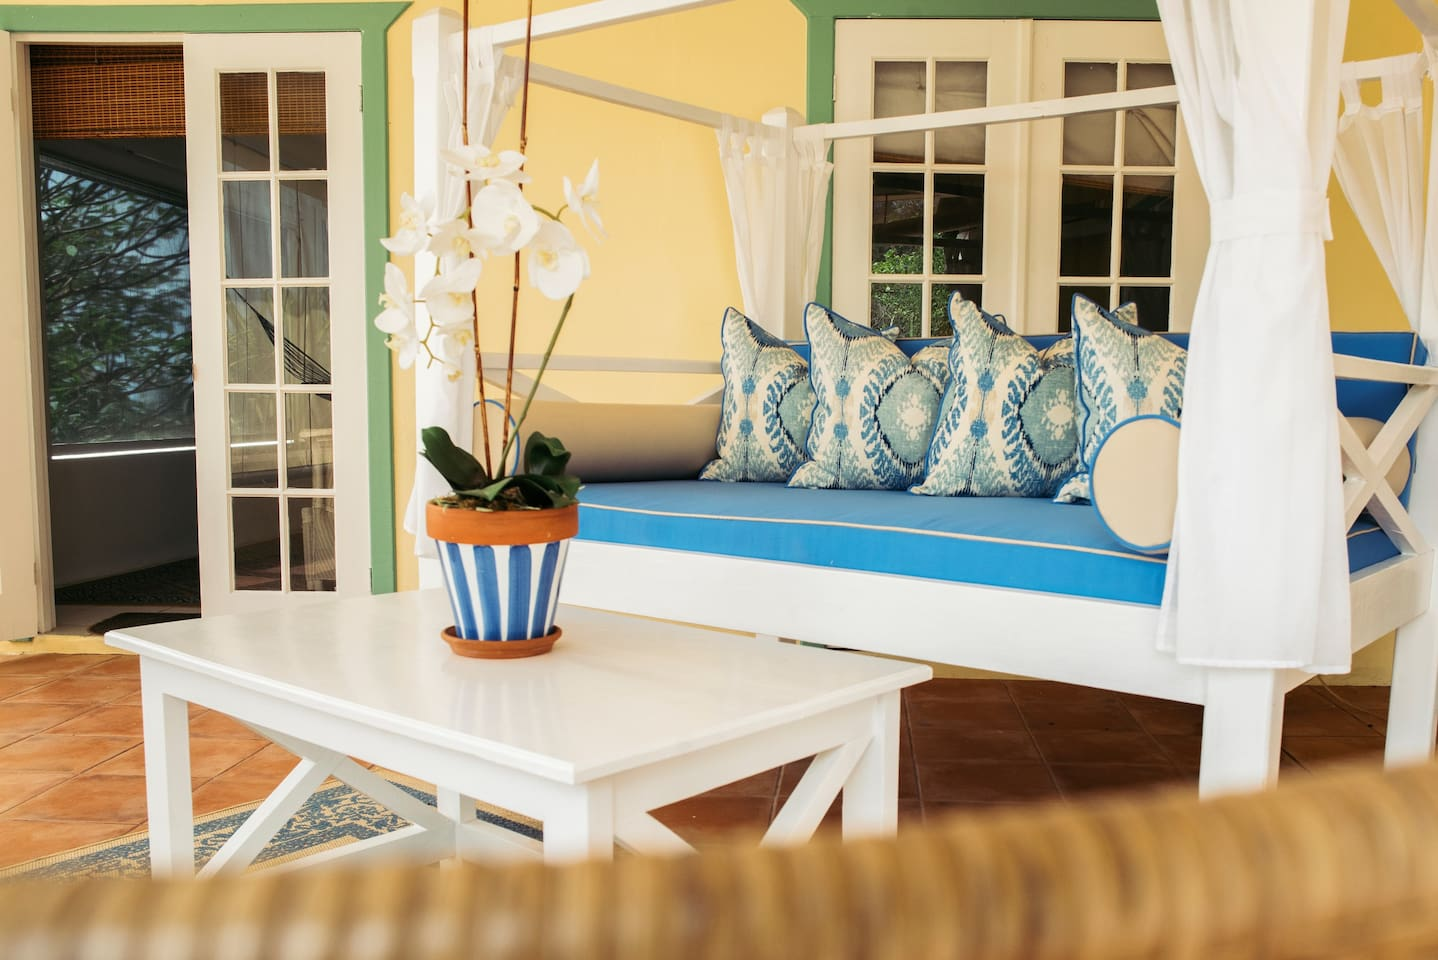 Daybed on Covered Patio